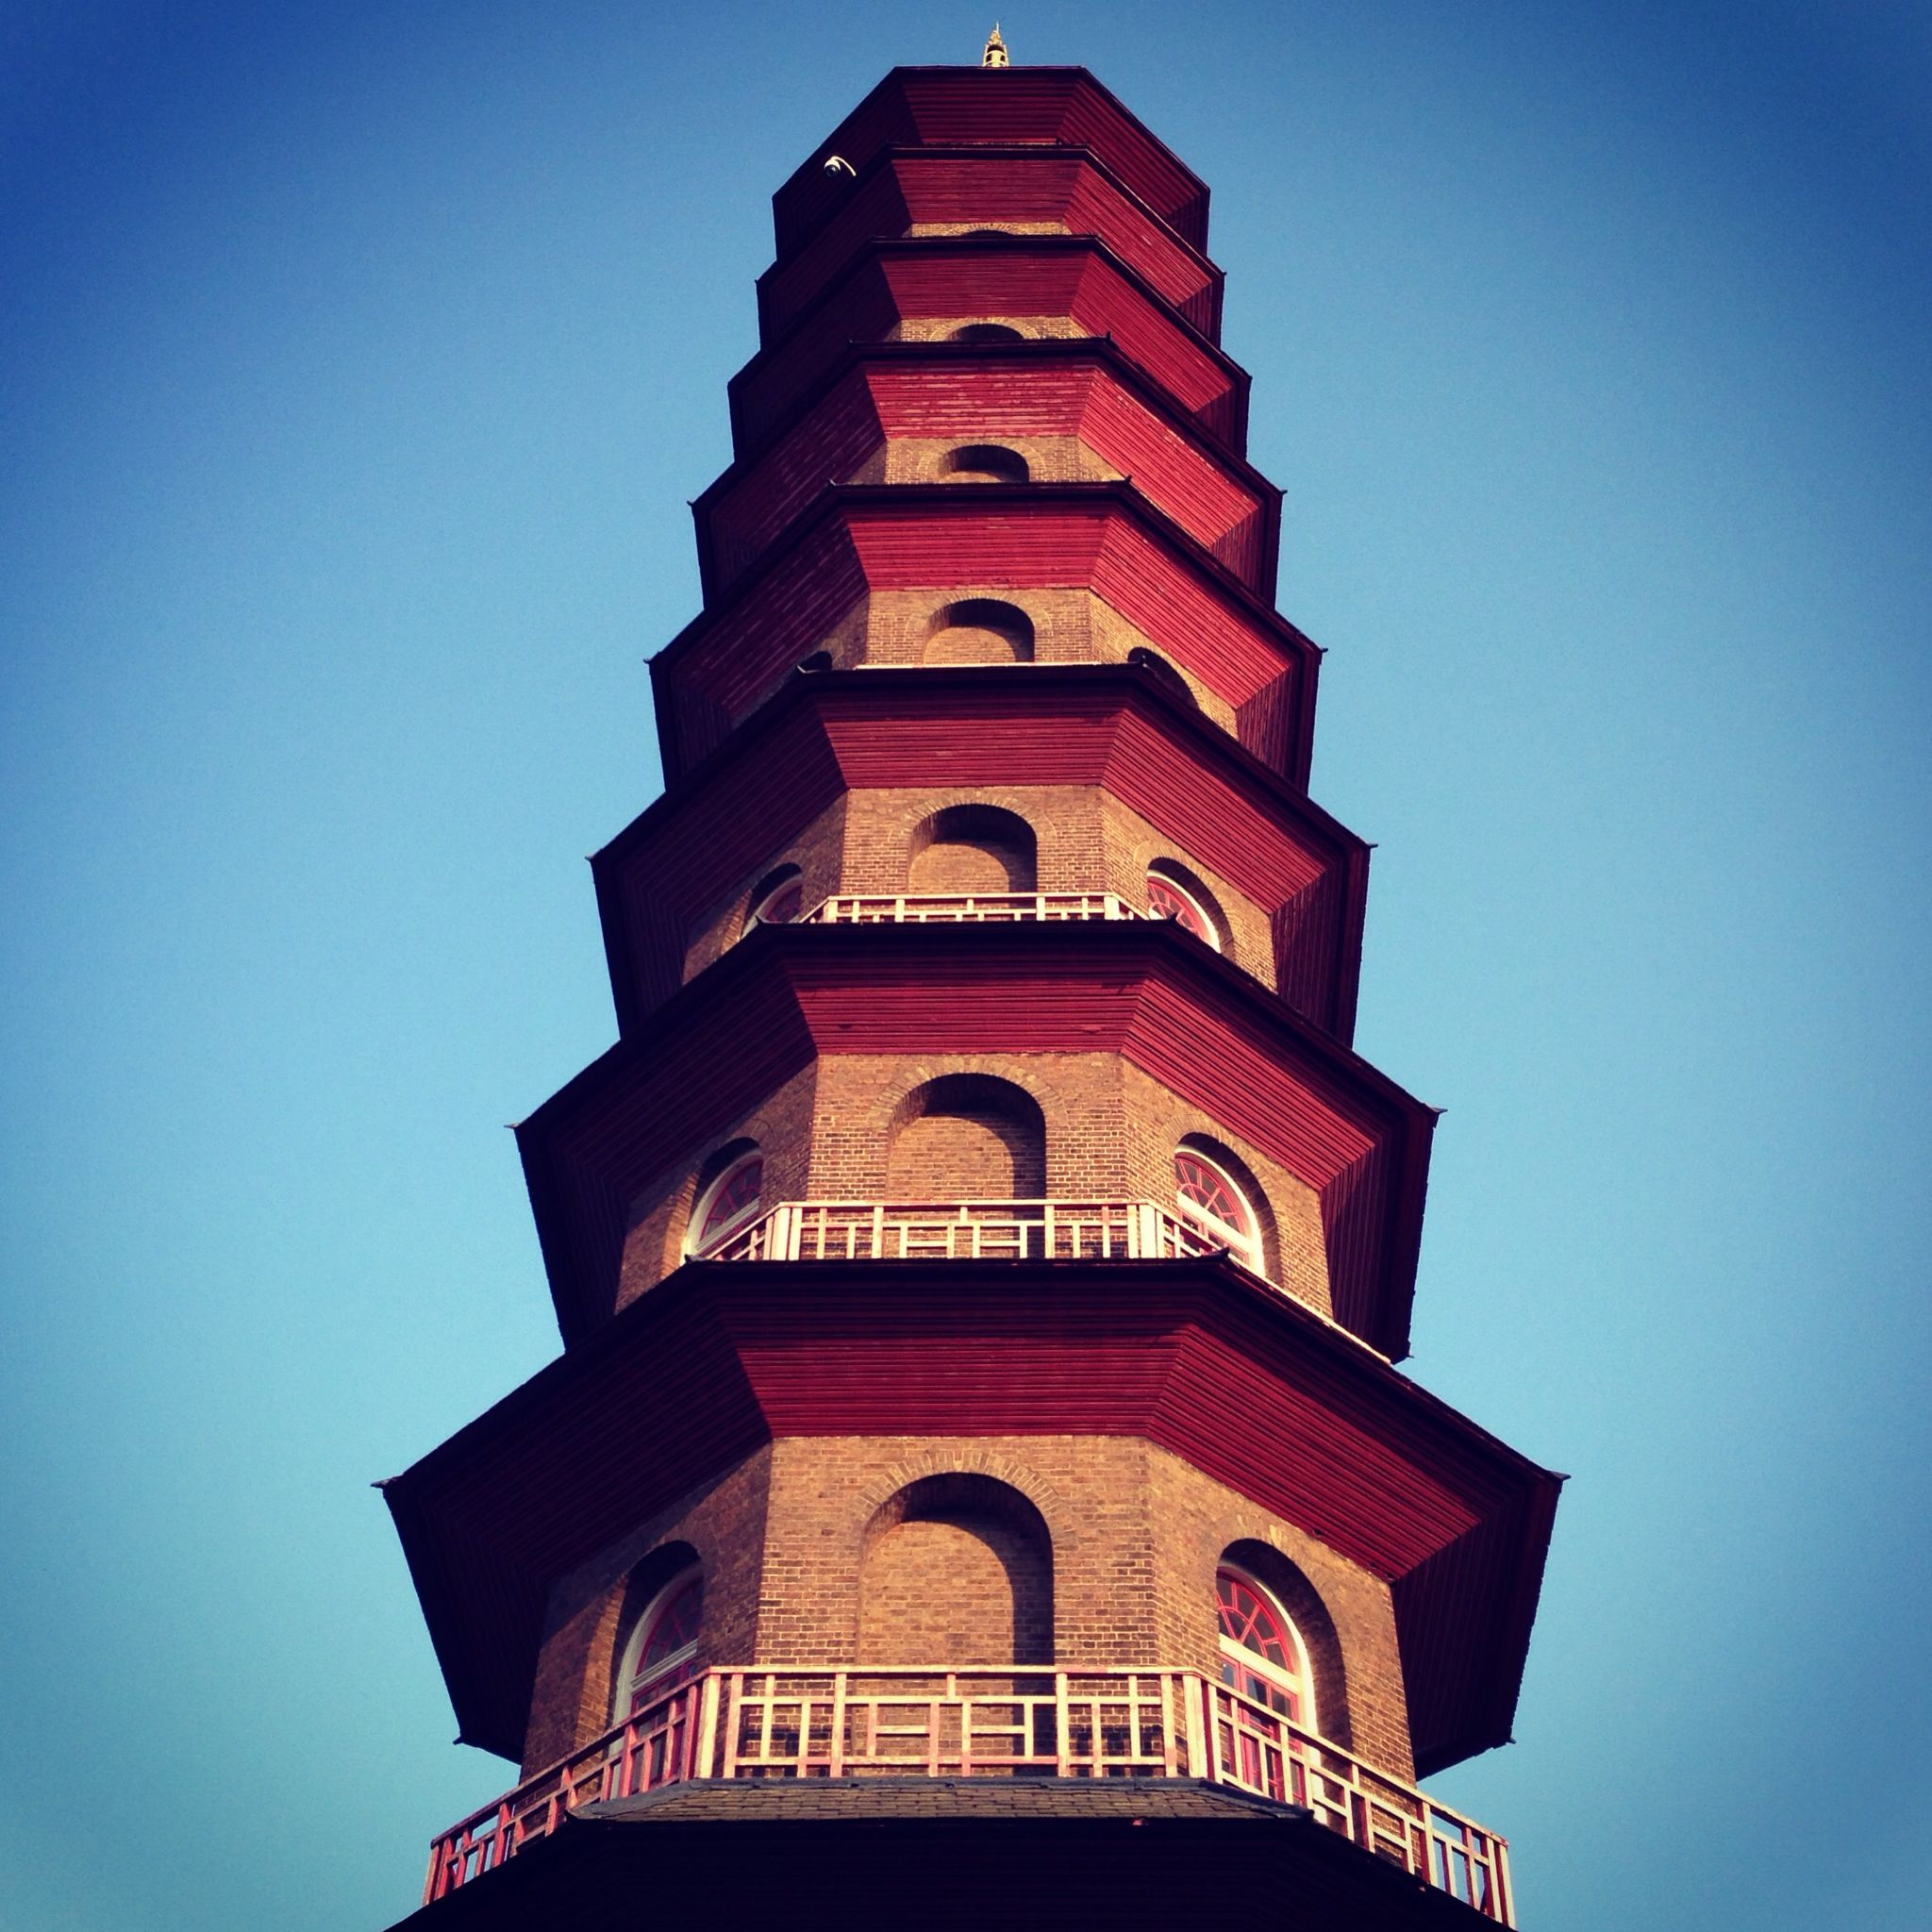 Pagoda, Kew Gardens. Sunny afternoon spent reading.